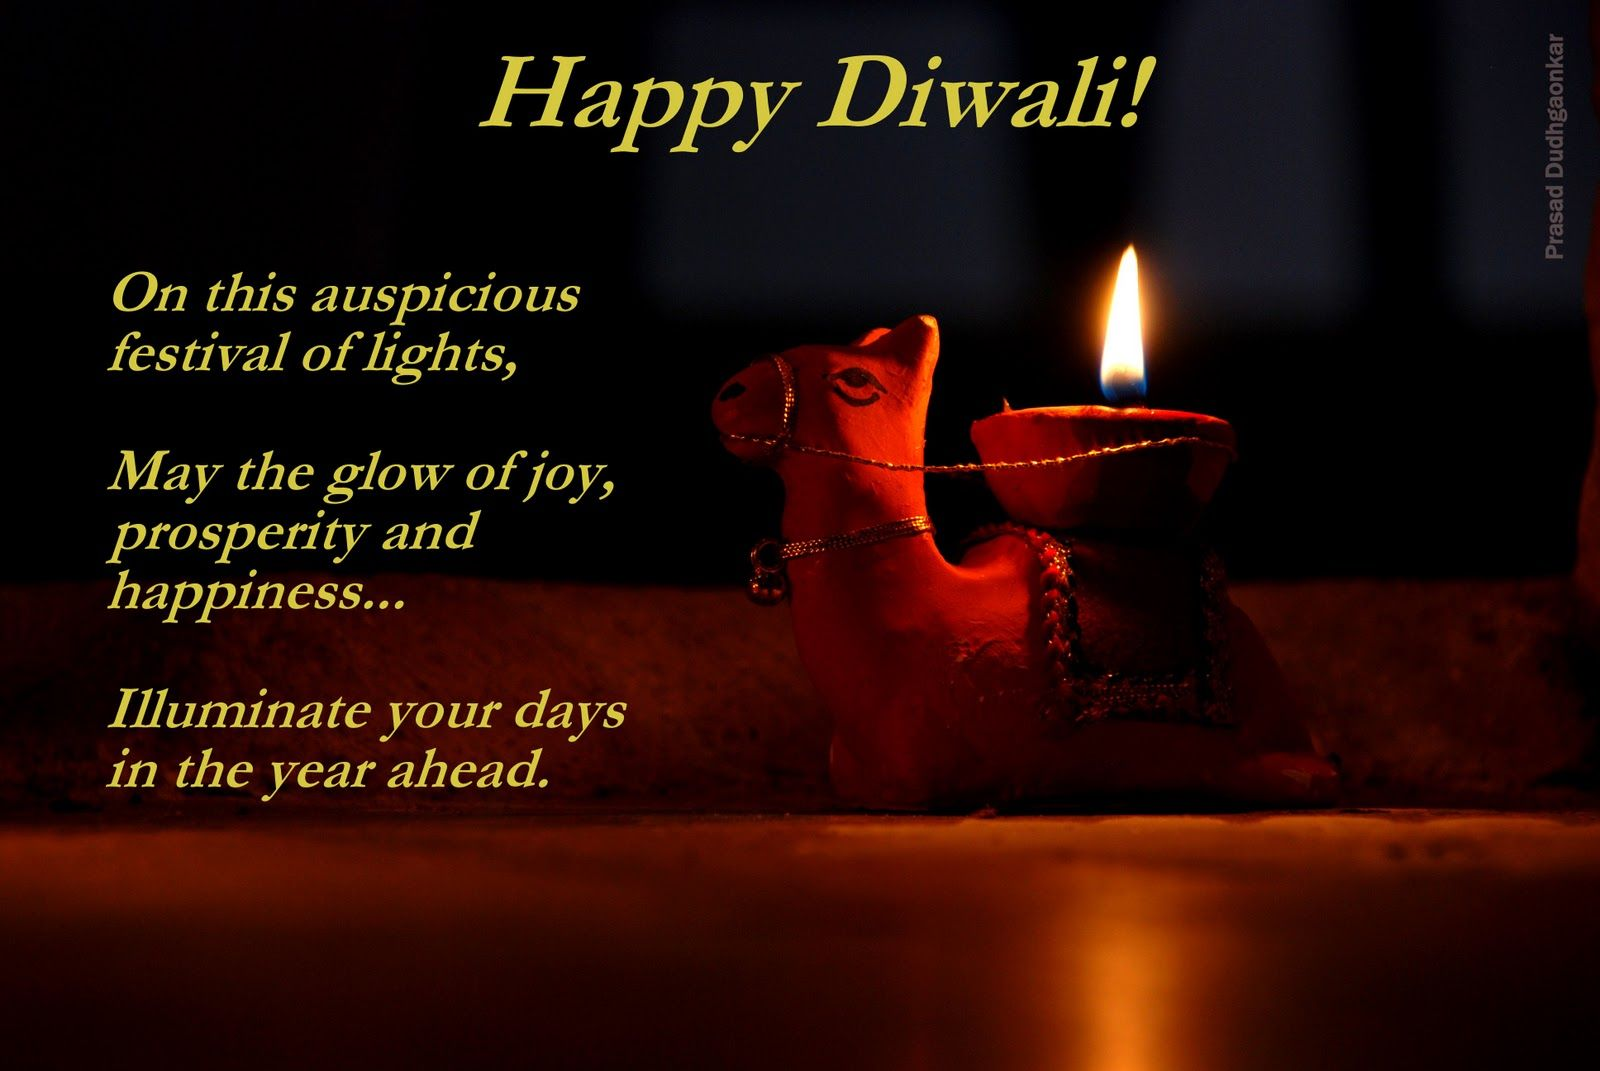 Picture messages for diwali httpwishespointdiwali wishes picture messages for diwali httpwishespointdiwali m4hsunfo